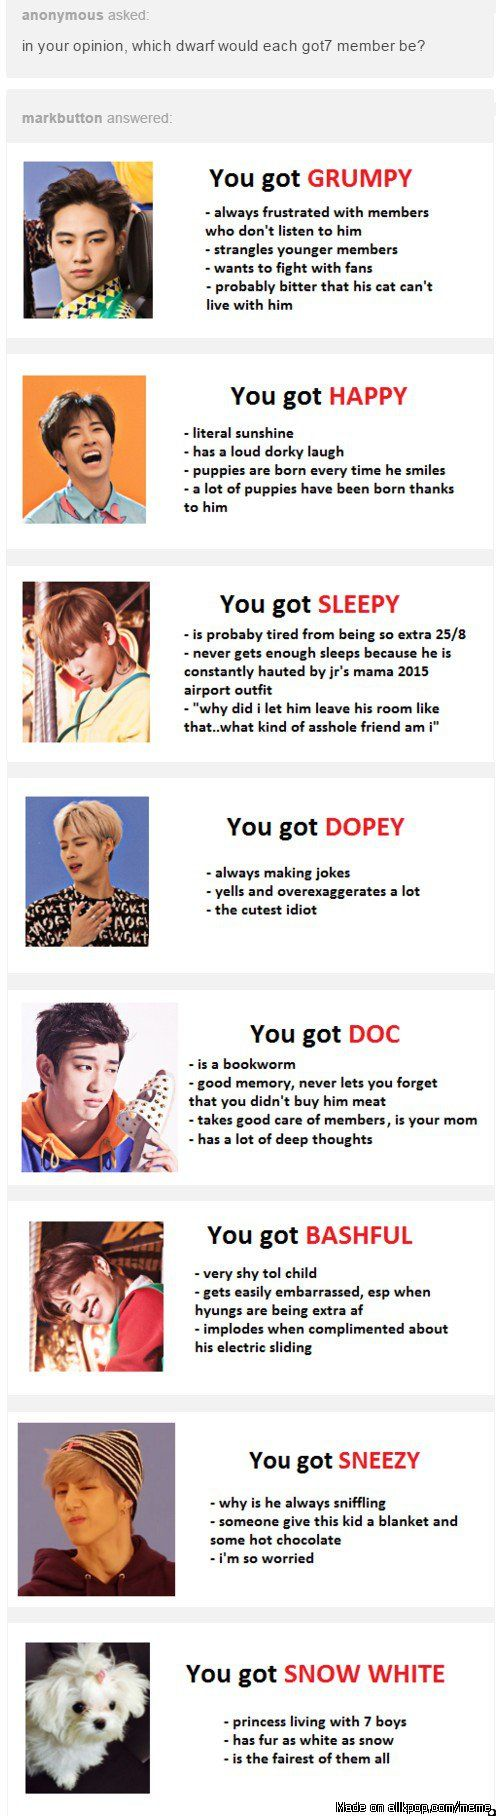 Snow White has GOT7 Dwarfs | allkpop Meme Center